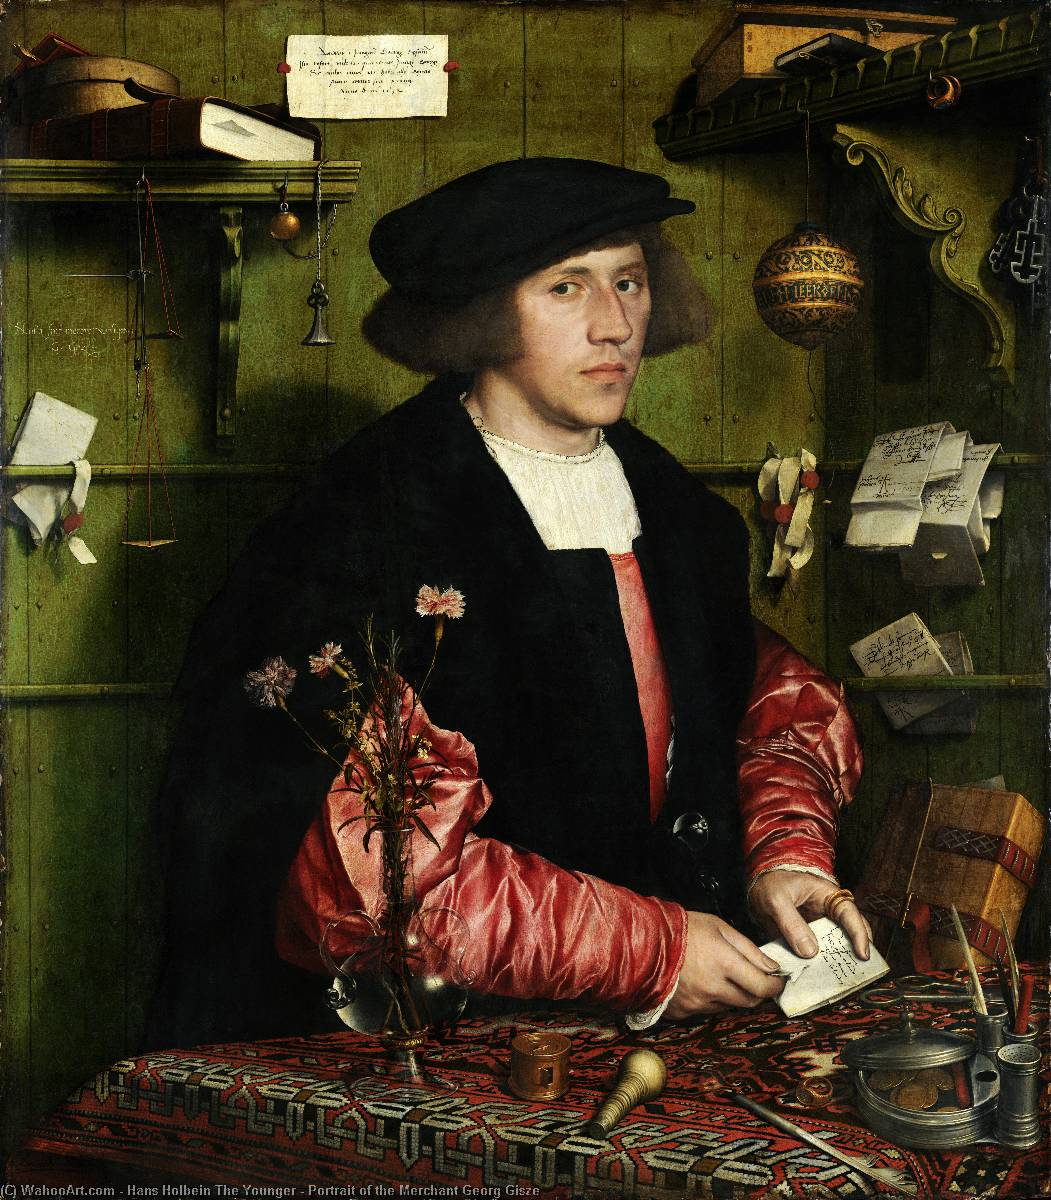 famous painting Retrato do comerciante de Georg Gisze of Hans Holbein The Younger